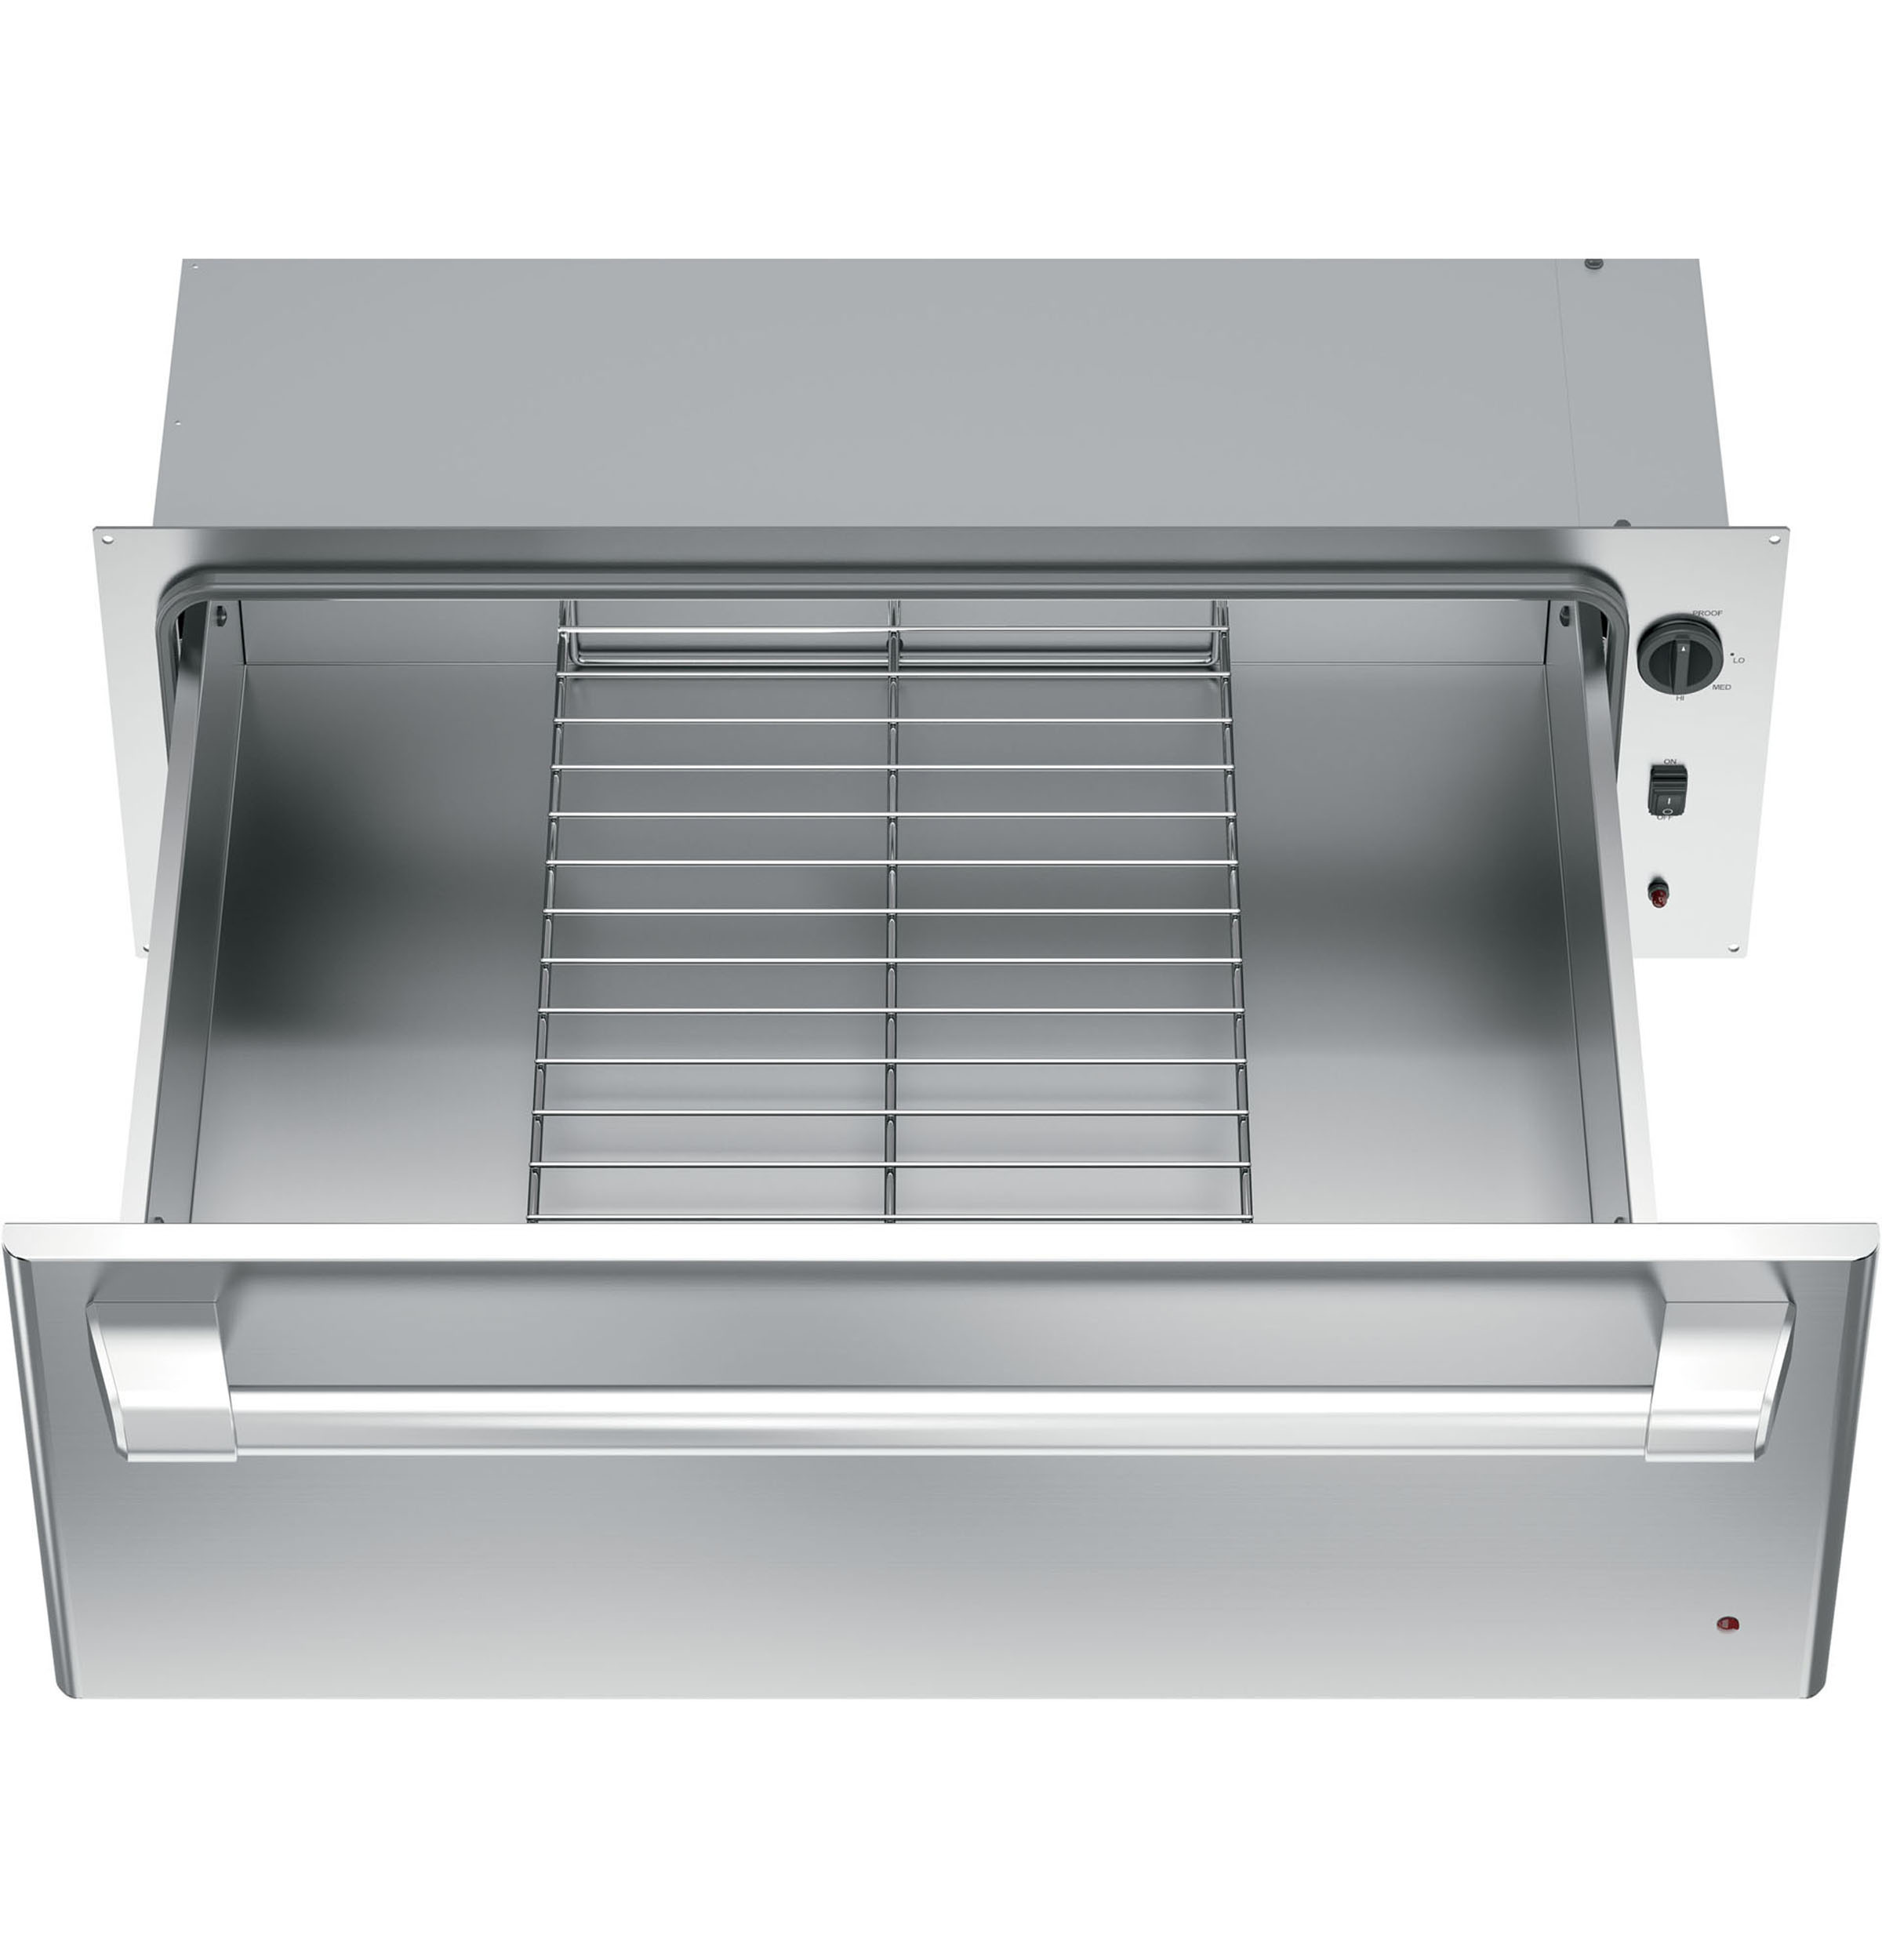 "Model: CW9000SJSS | GE Cafe GE Café™ Series 30"" Warming Drawer"